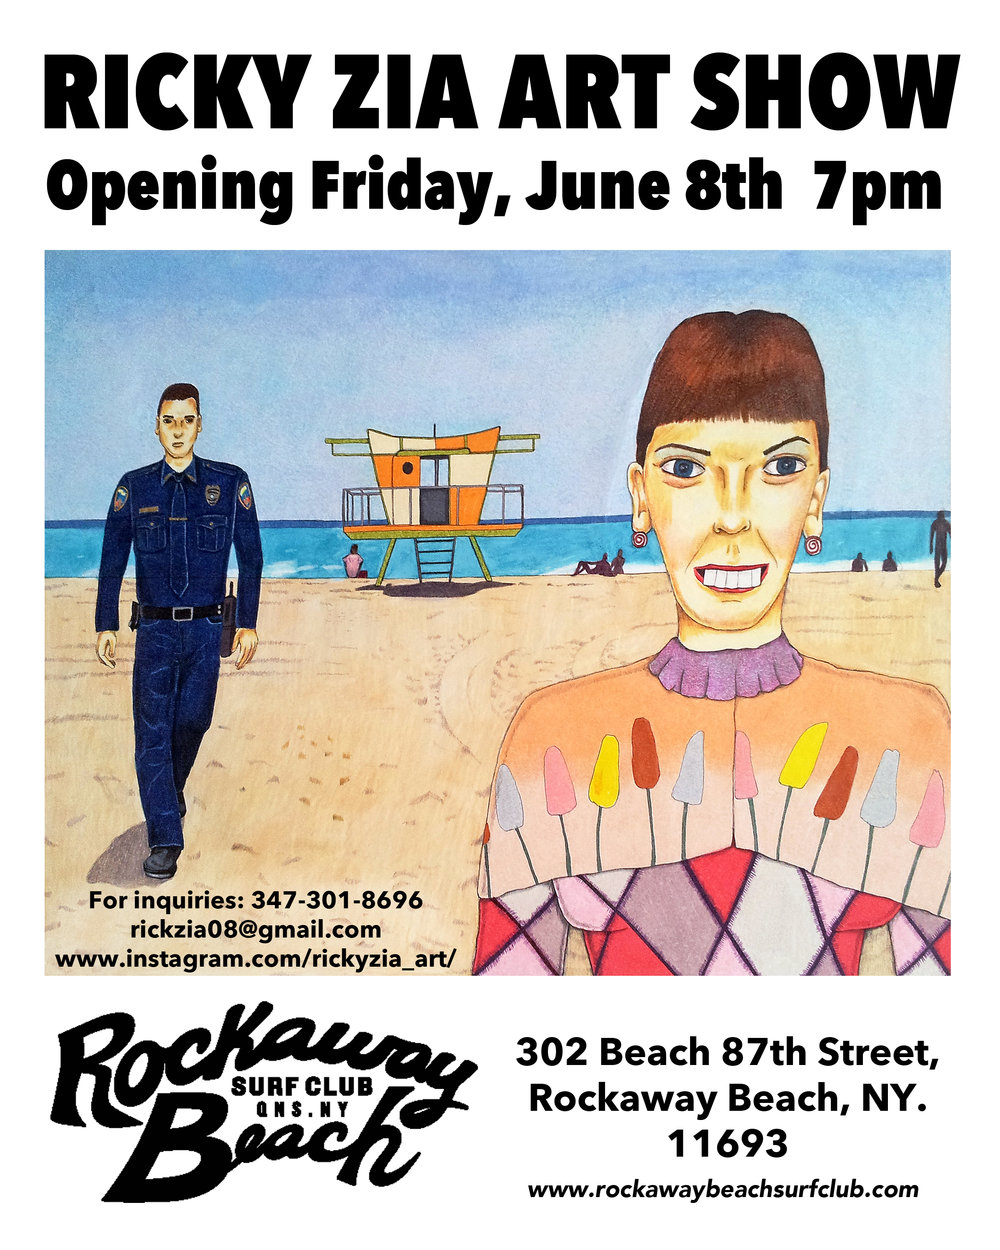 ricky zia art show rockaway beach surf club